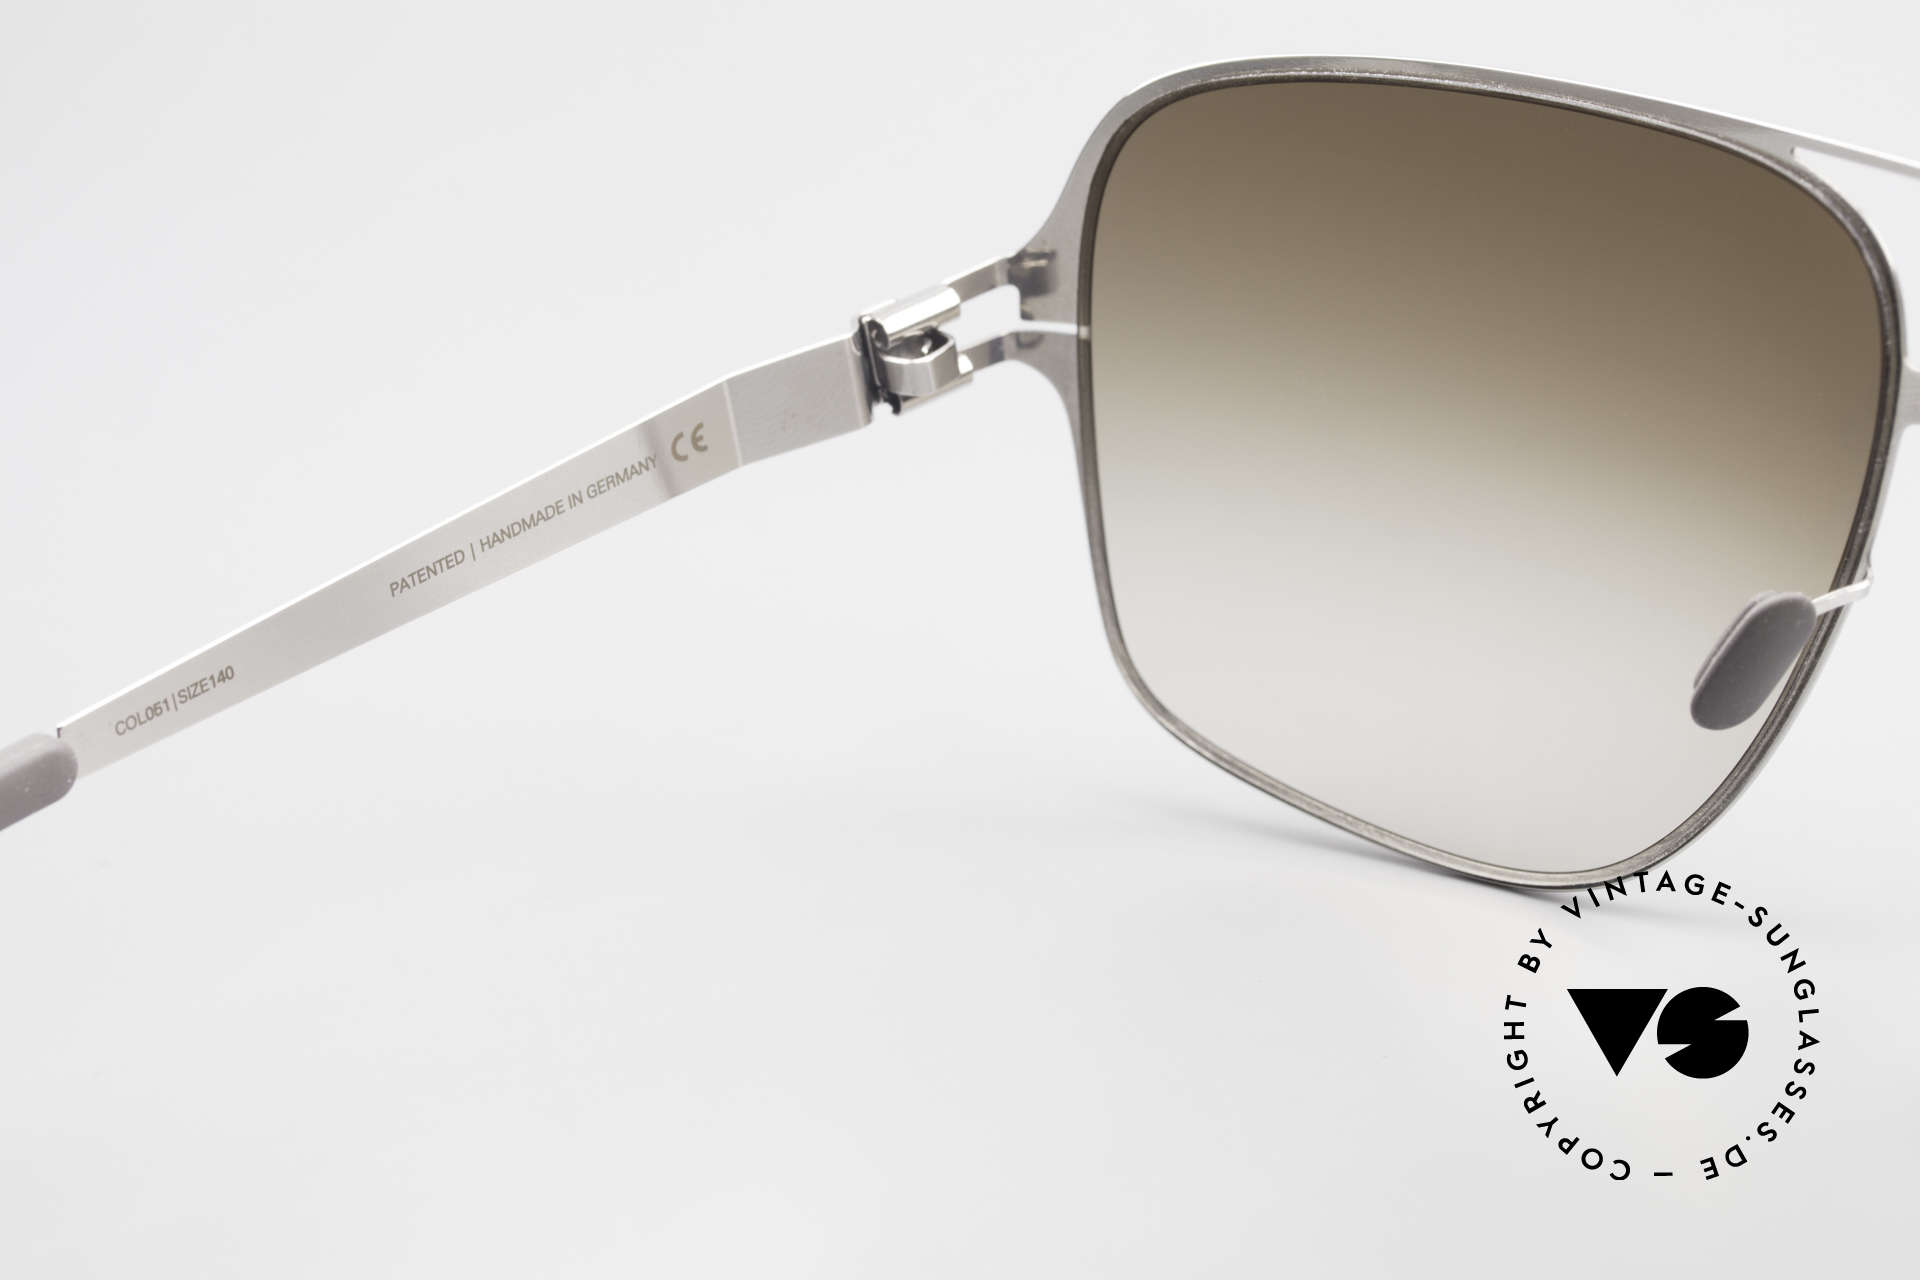 Mykita Cassius Lenny Kravitz Sunglasses XXL, worn by Lenny Kravitz (rare and in high demand, today), Made for Men